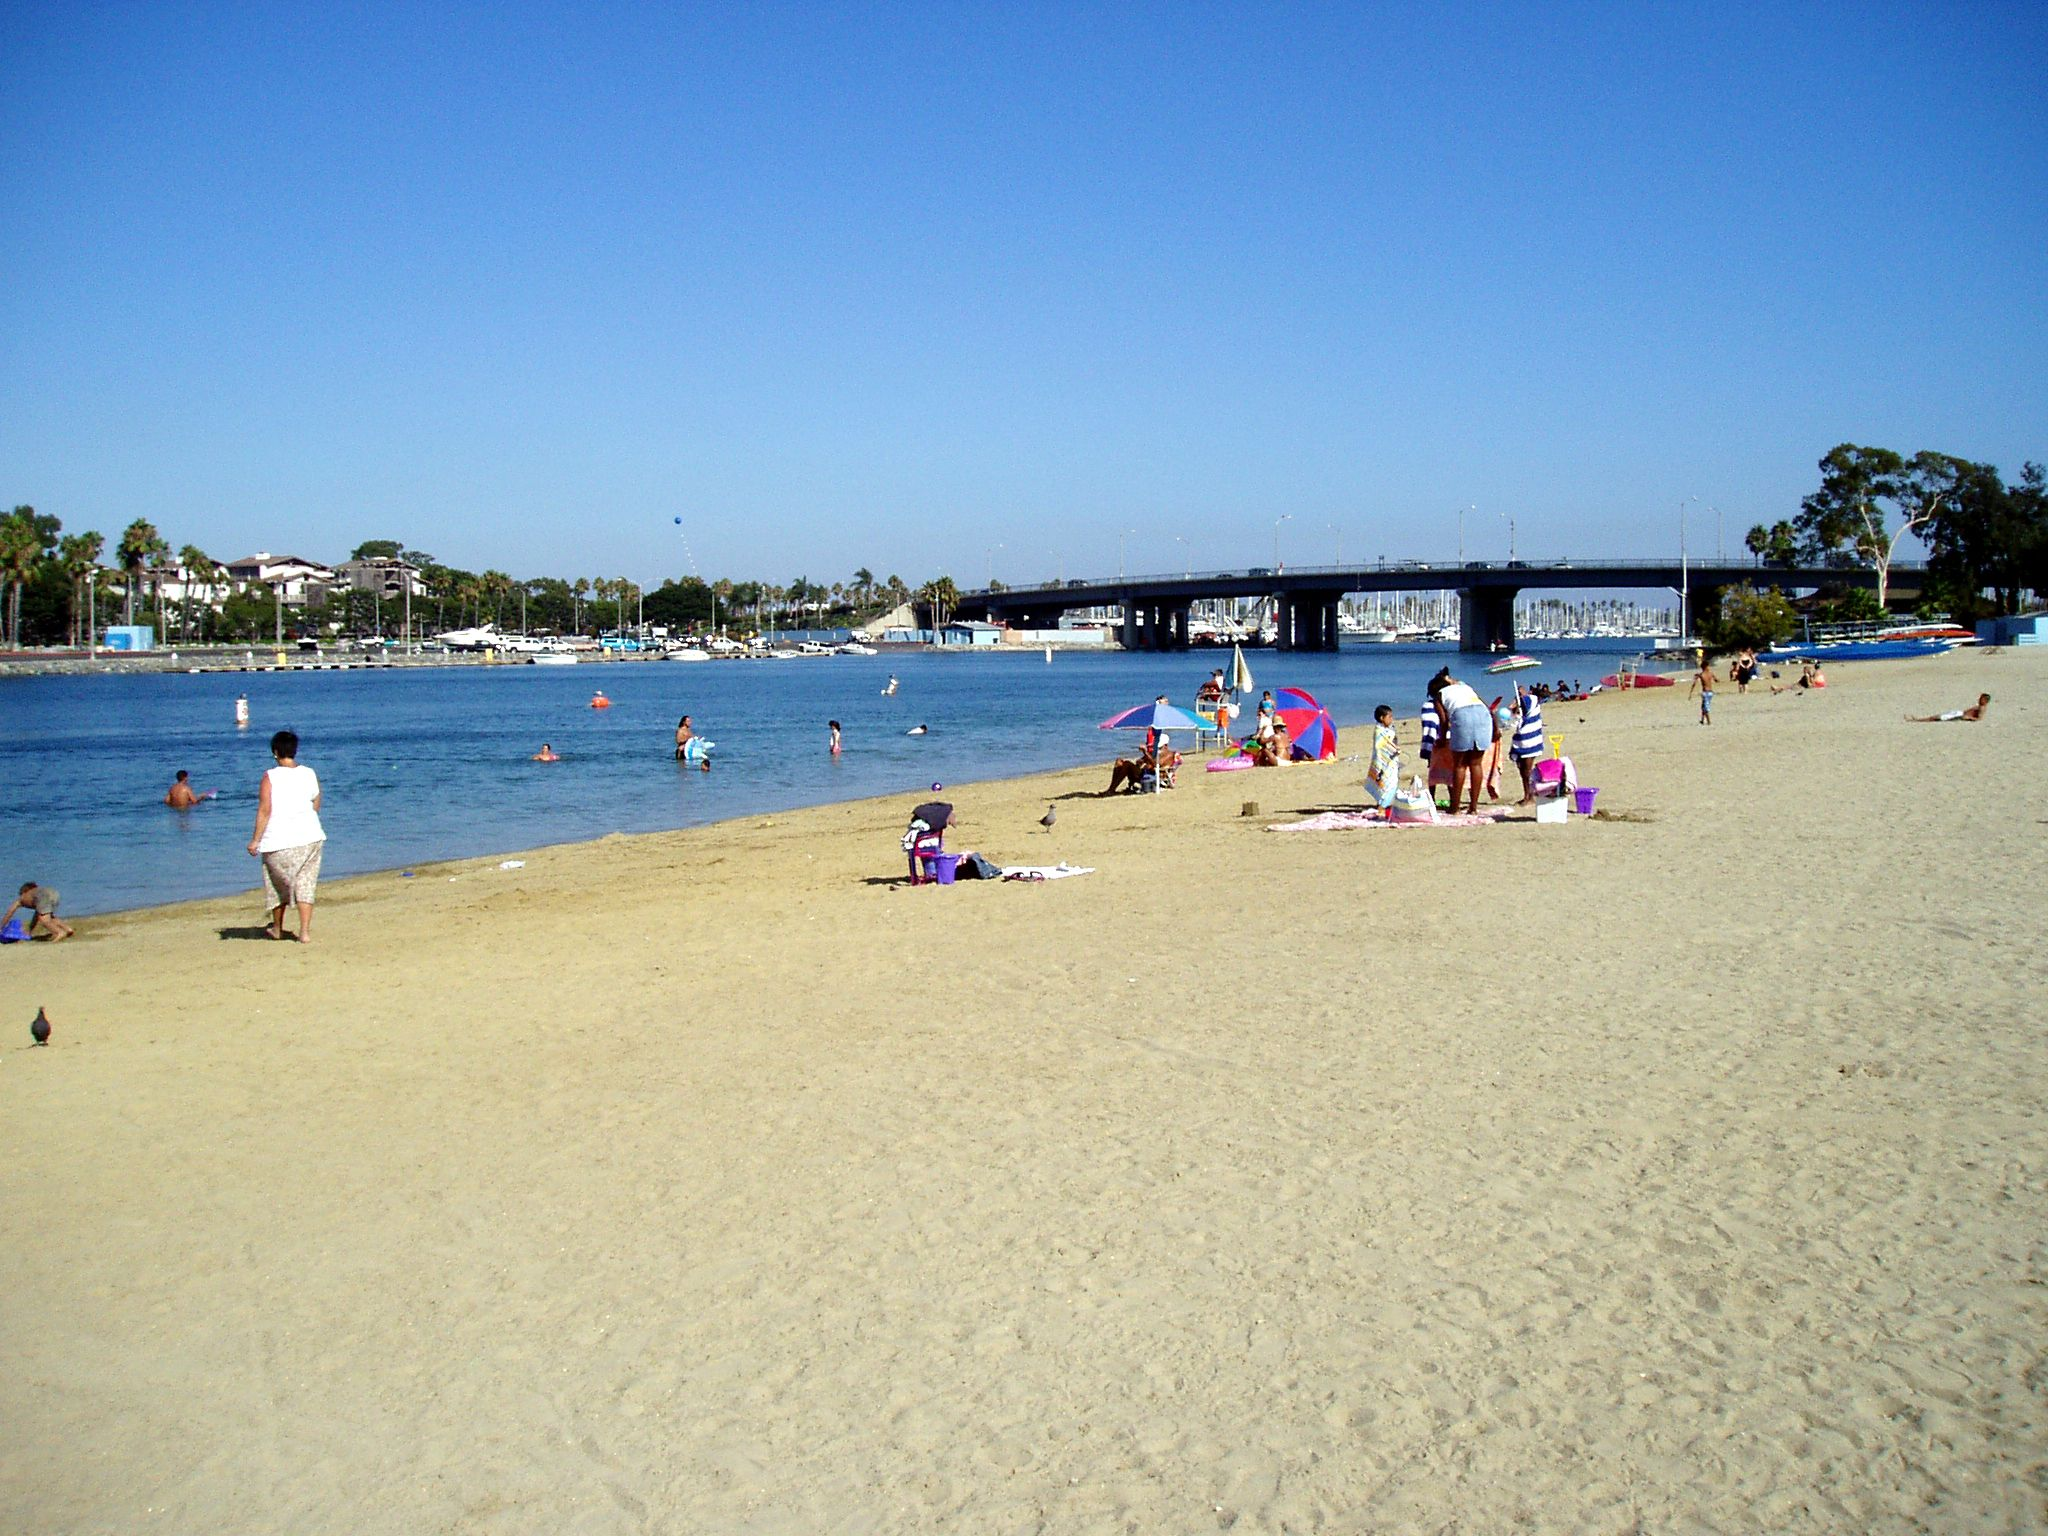 Mothers Beach in Long Beach Picnics and swimming so fun